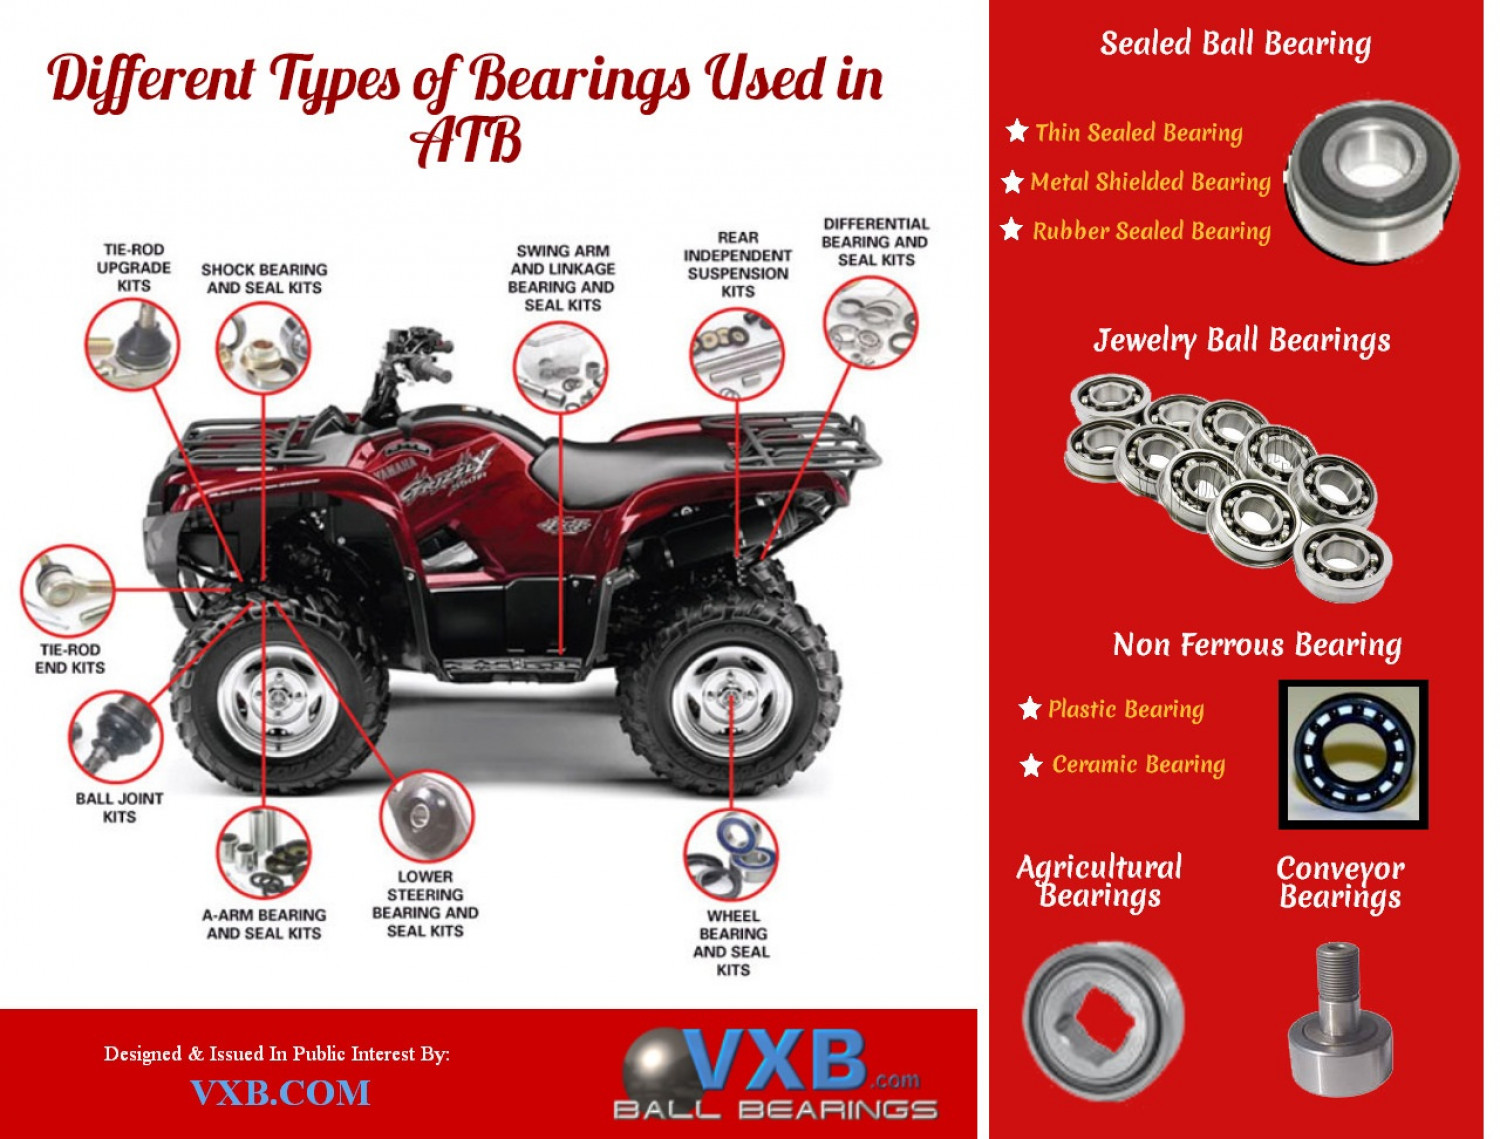 Different Types of Bearings Used in ATB Infographic